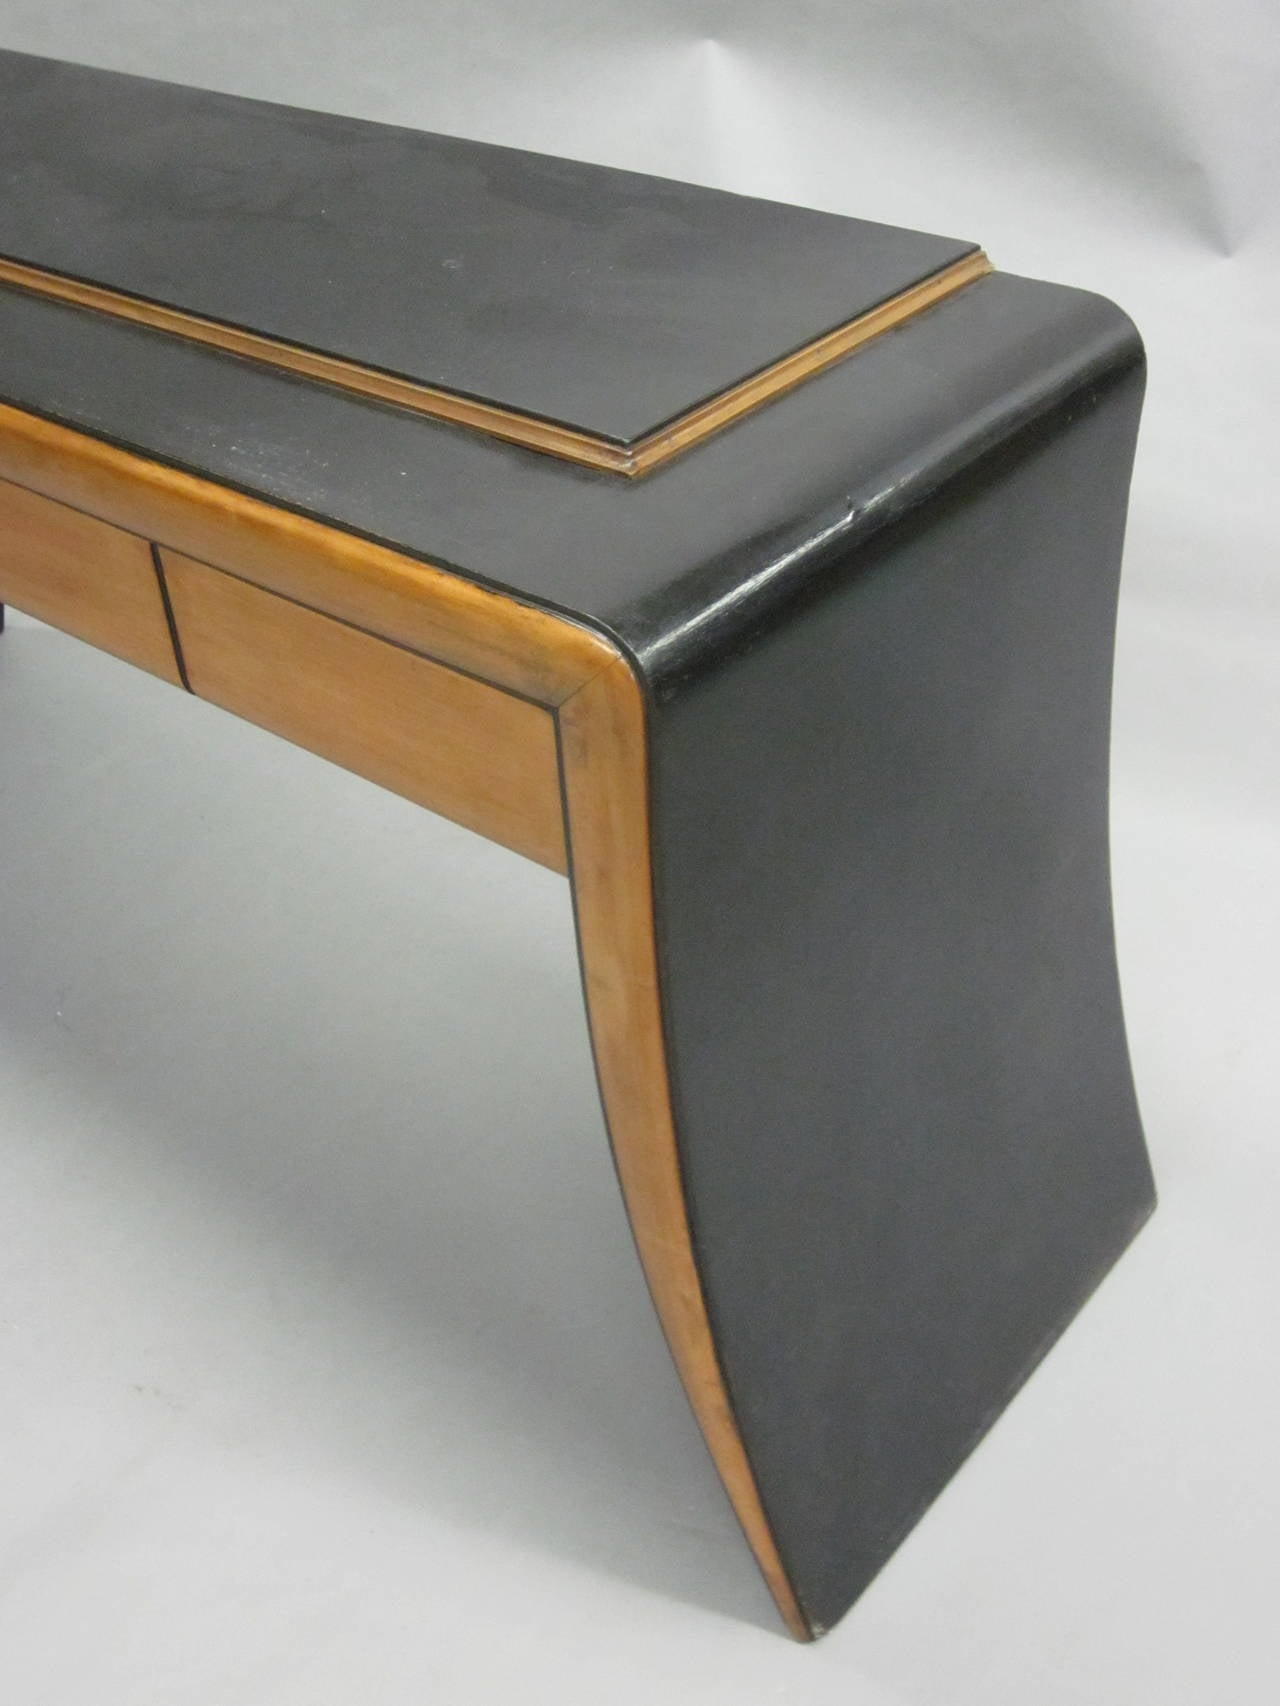 Italian Mid-Century Modern Neoclassical Vanity / Sofa Table by Paolo Buffa, 1930 7